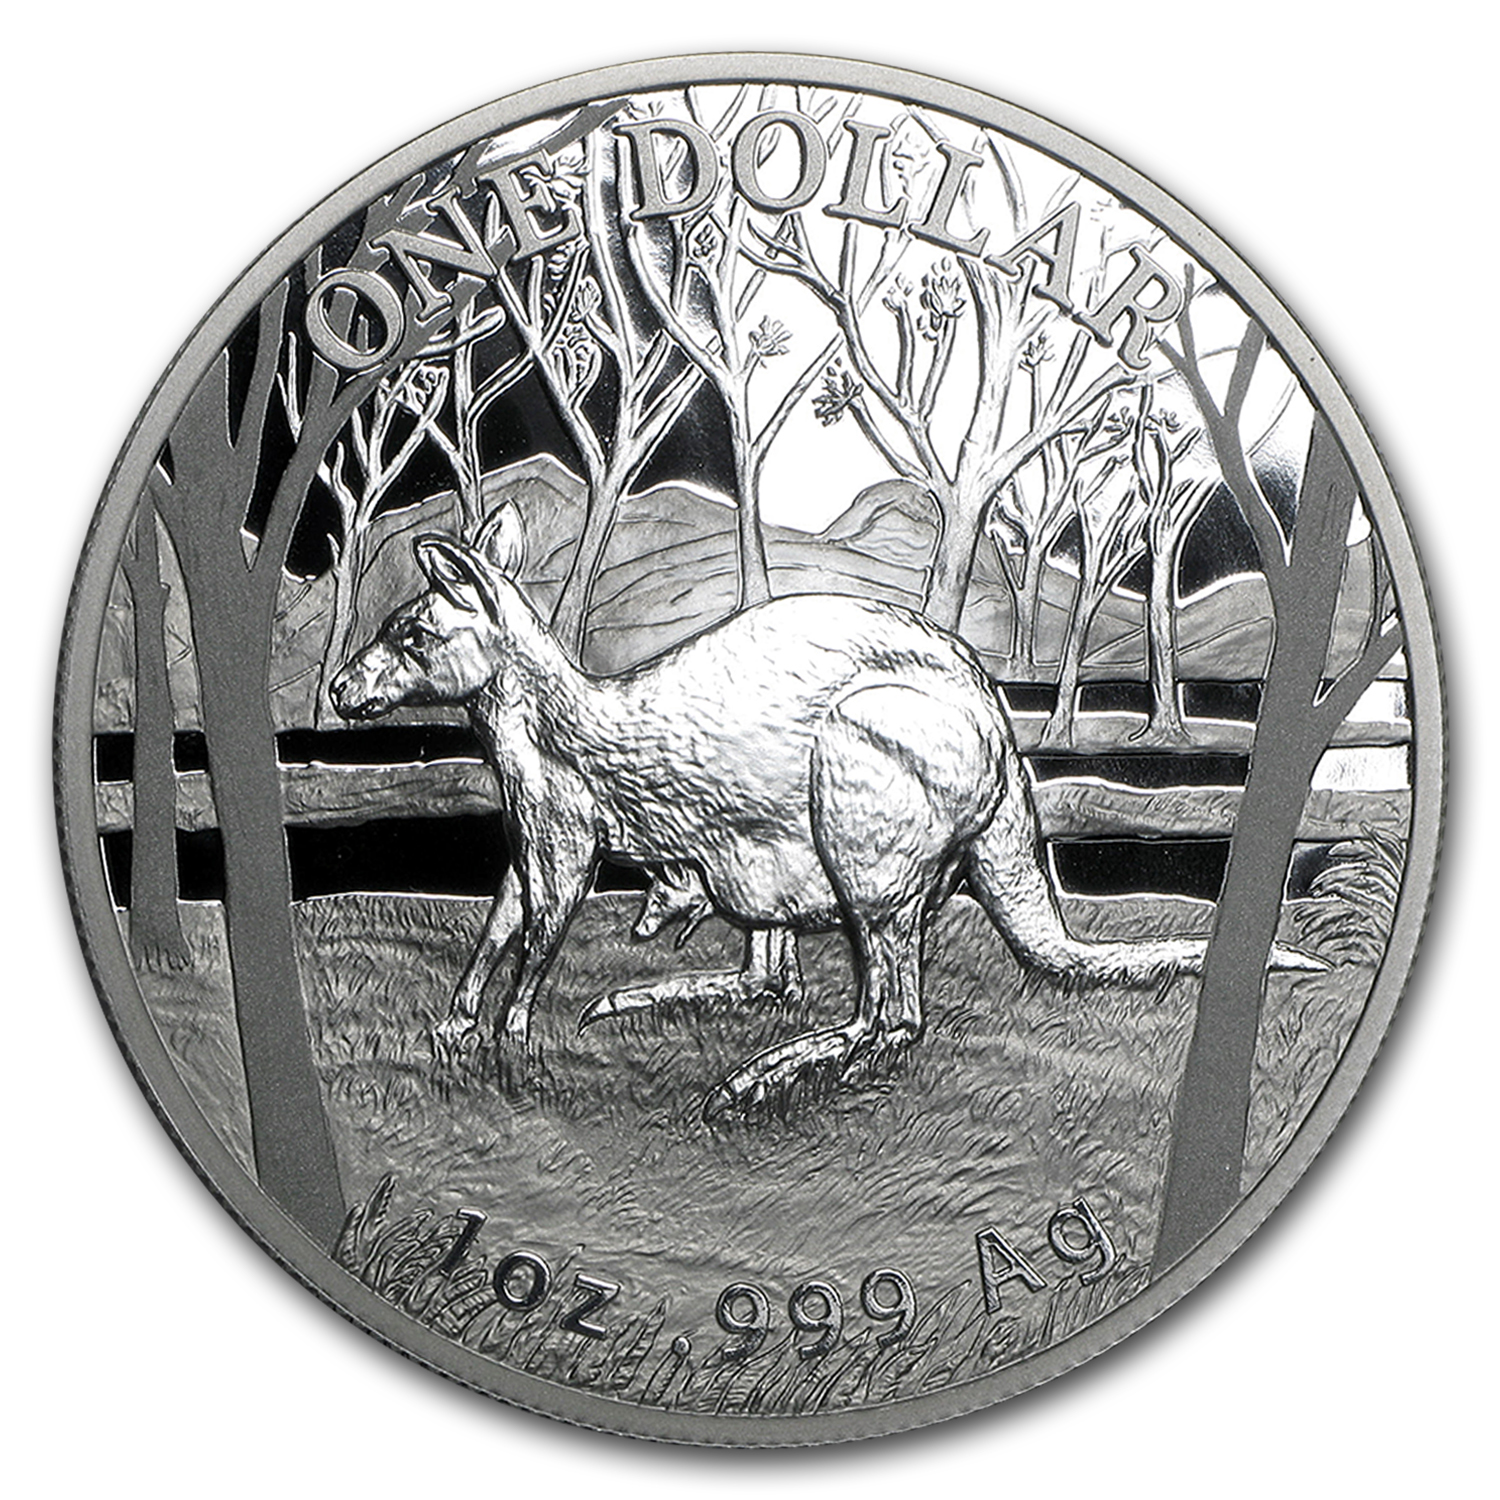 2016 Australia 1 oz Proof Silver Kangaroo (w/Box and COA)